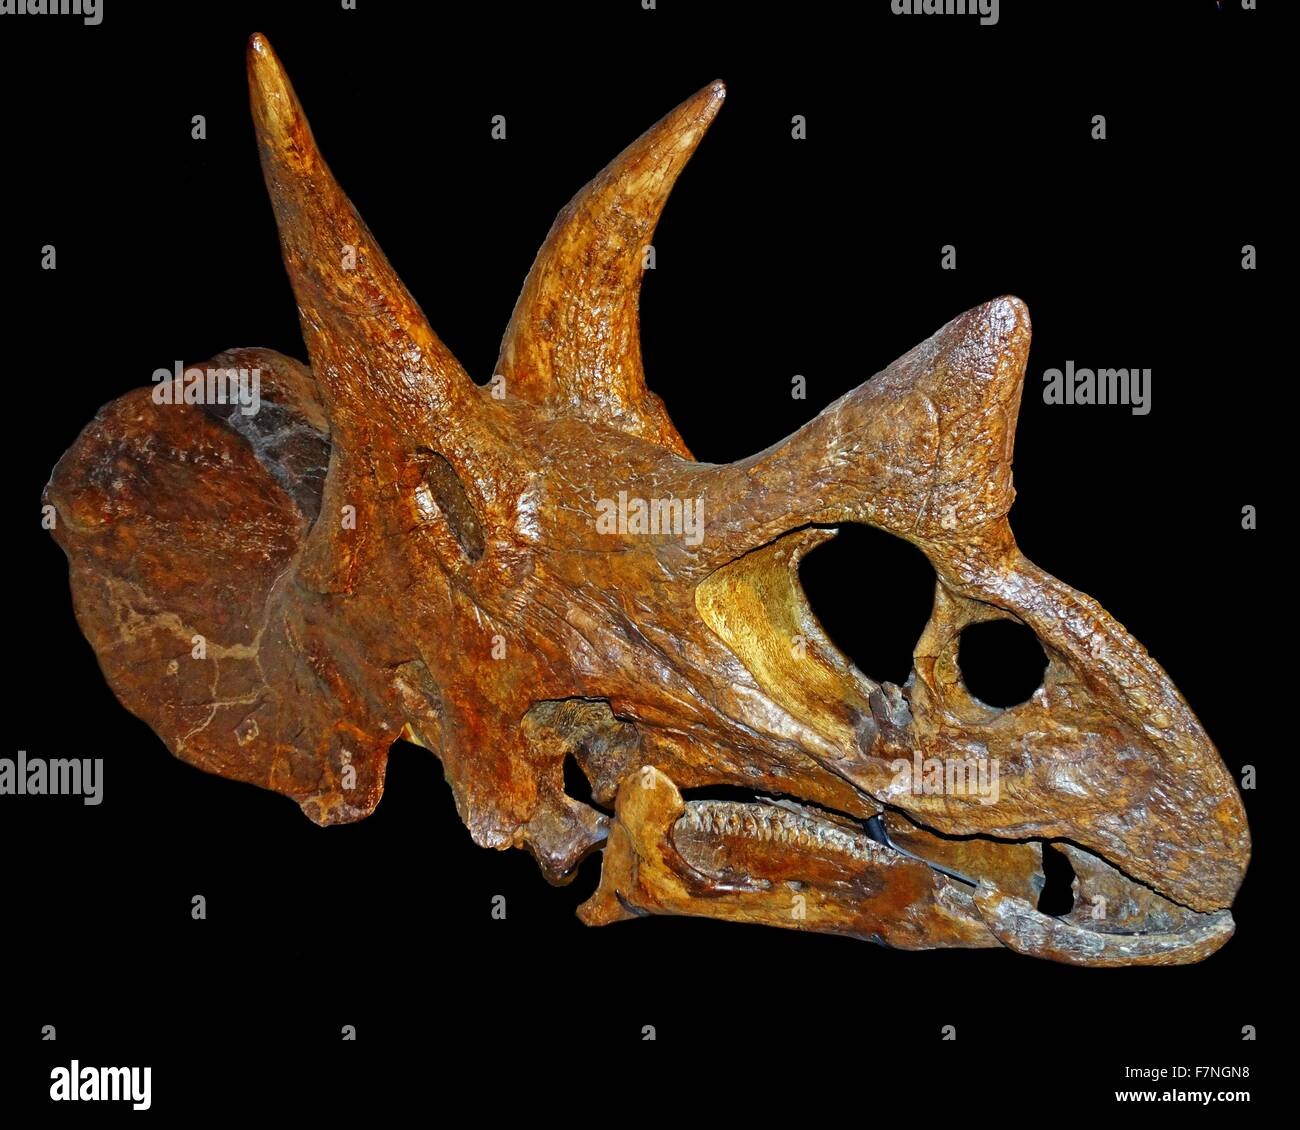 Skull of a Triceratops, one of the last dinosaurs to exists. - Stock Image